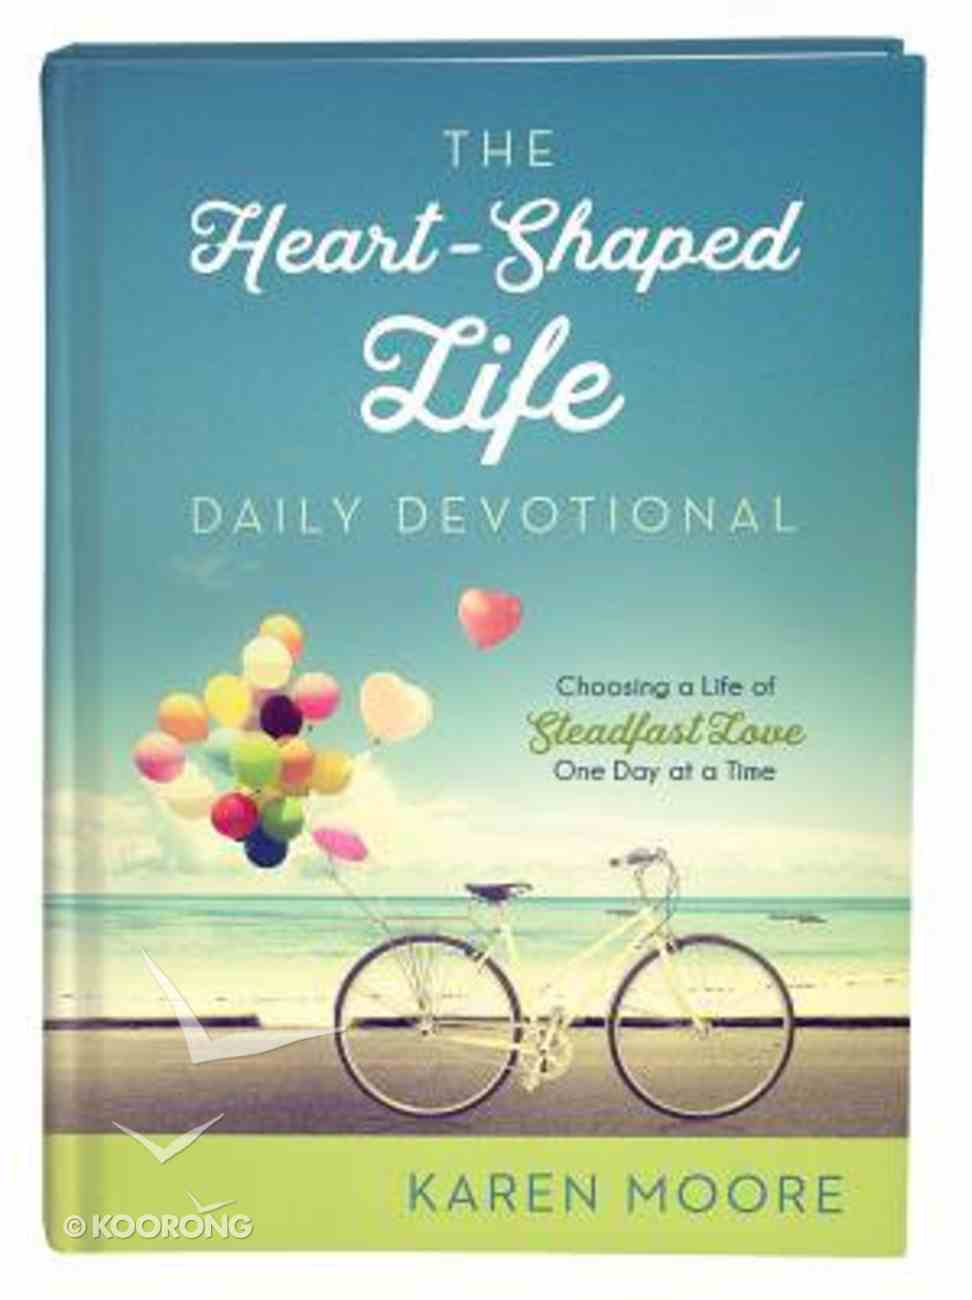 The Heart-Shaped Life Daily Devotional: Choosing a Life of Steadfast Love One Day At a Time Hardback